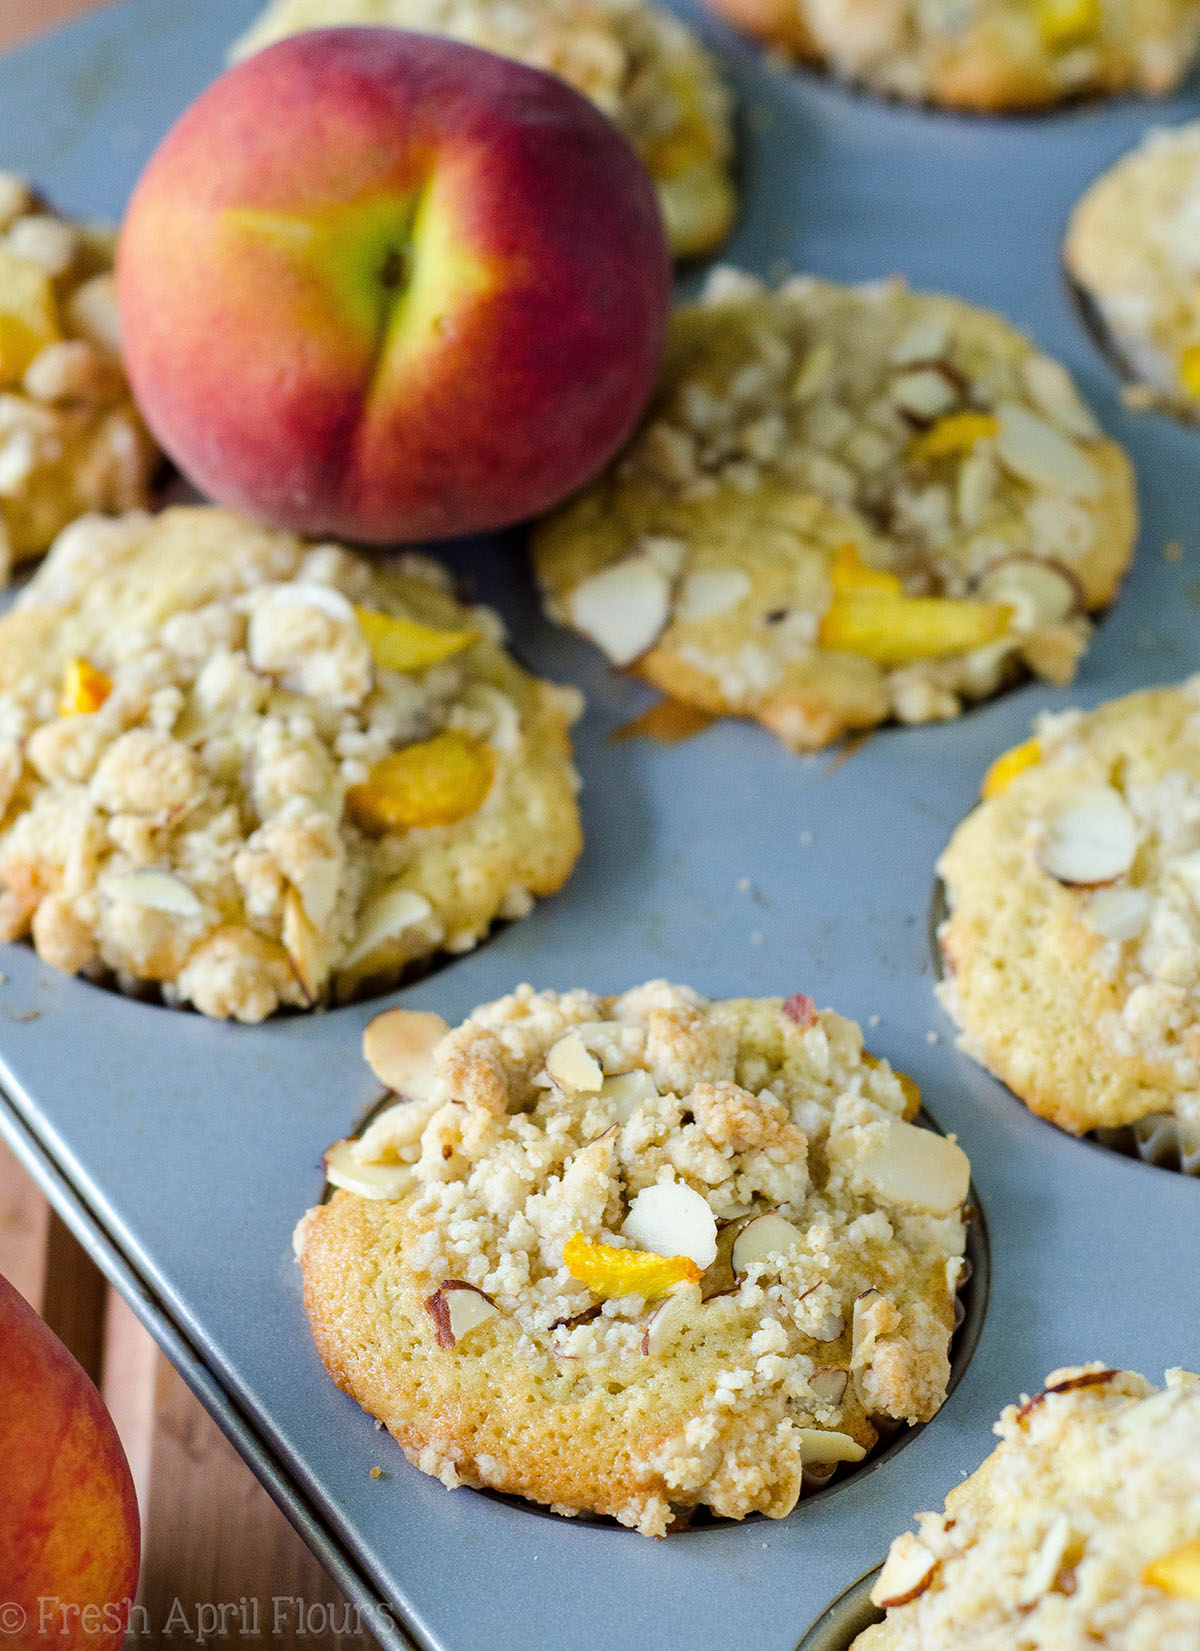 Moist and tender peach muffins, accented with almond extract and topped with a sweet and crunchy almond streusel.